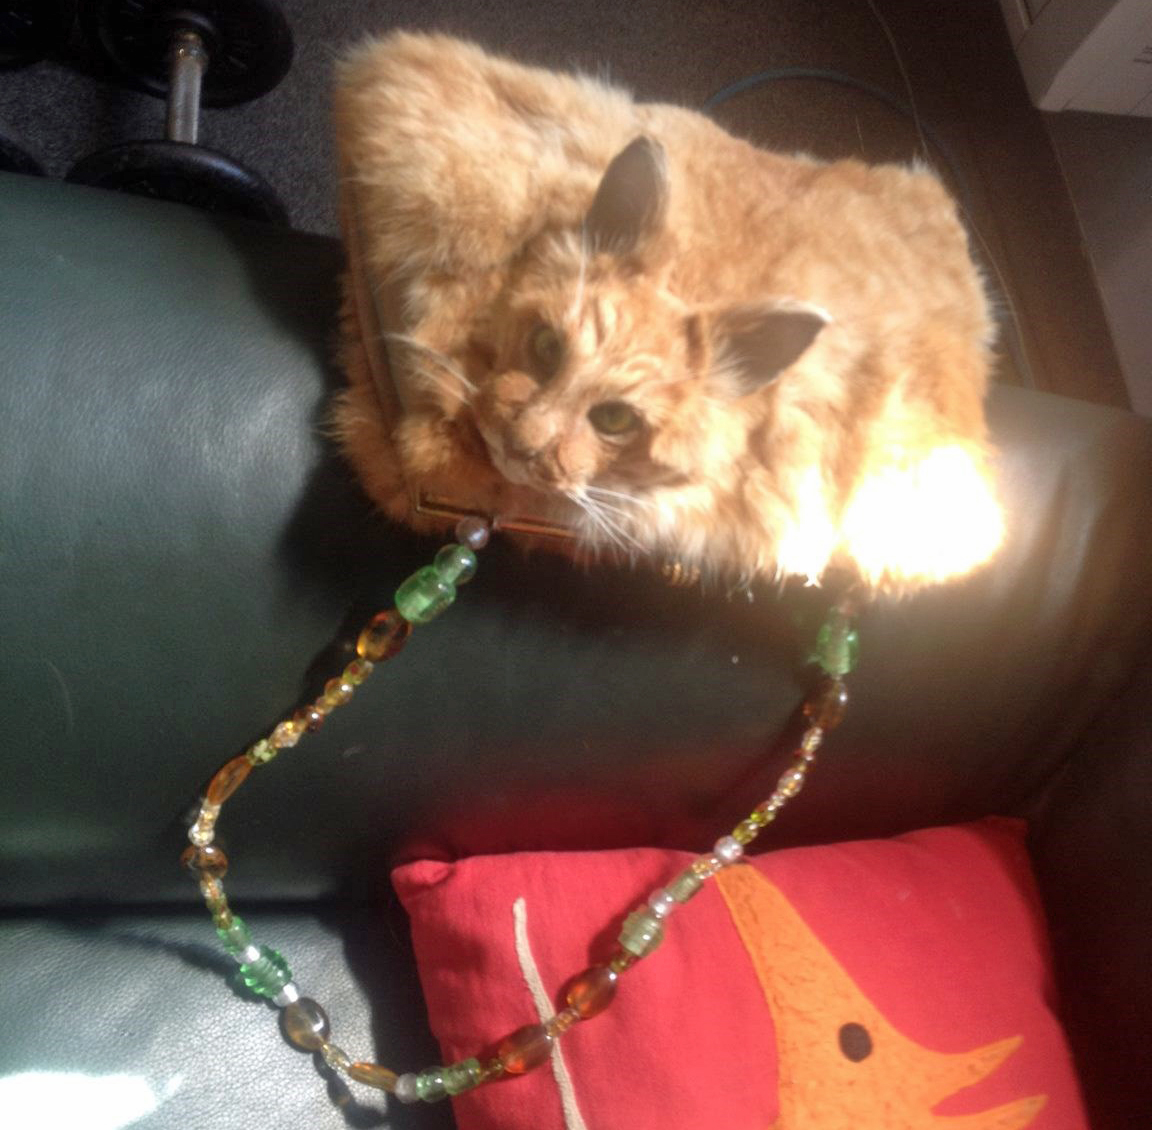 'Real glamour puss': Uproar over handbag made from dead, feral cat